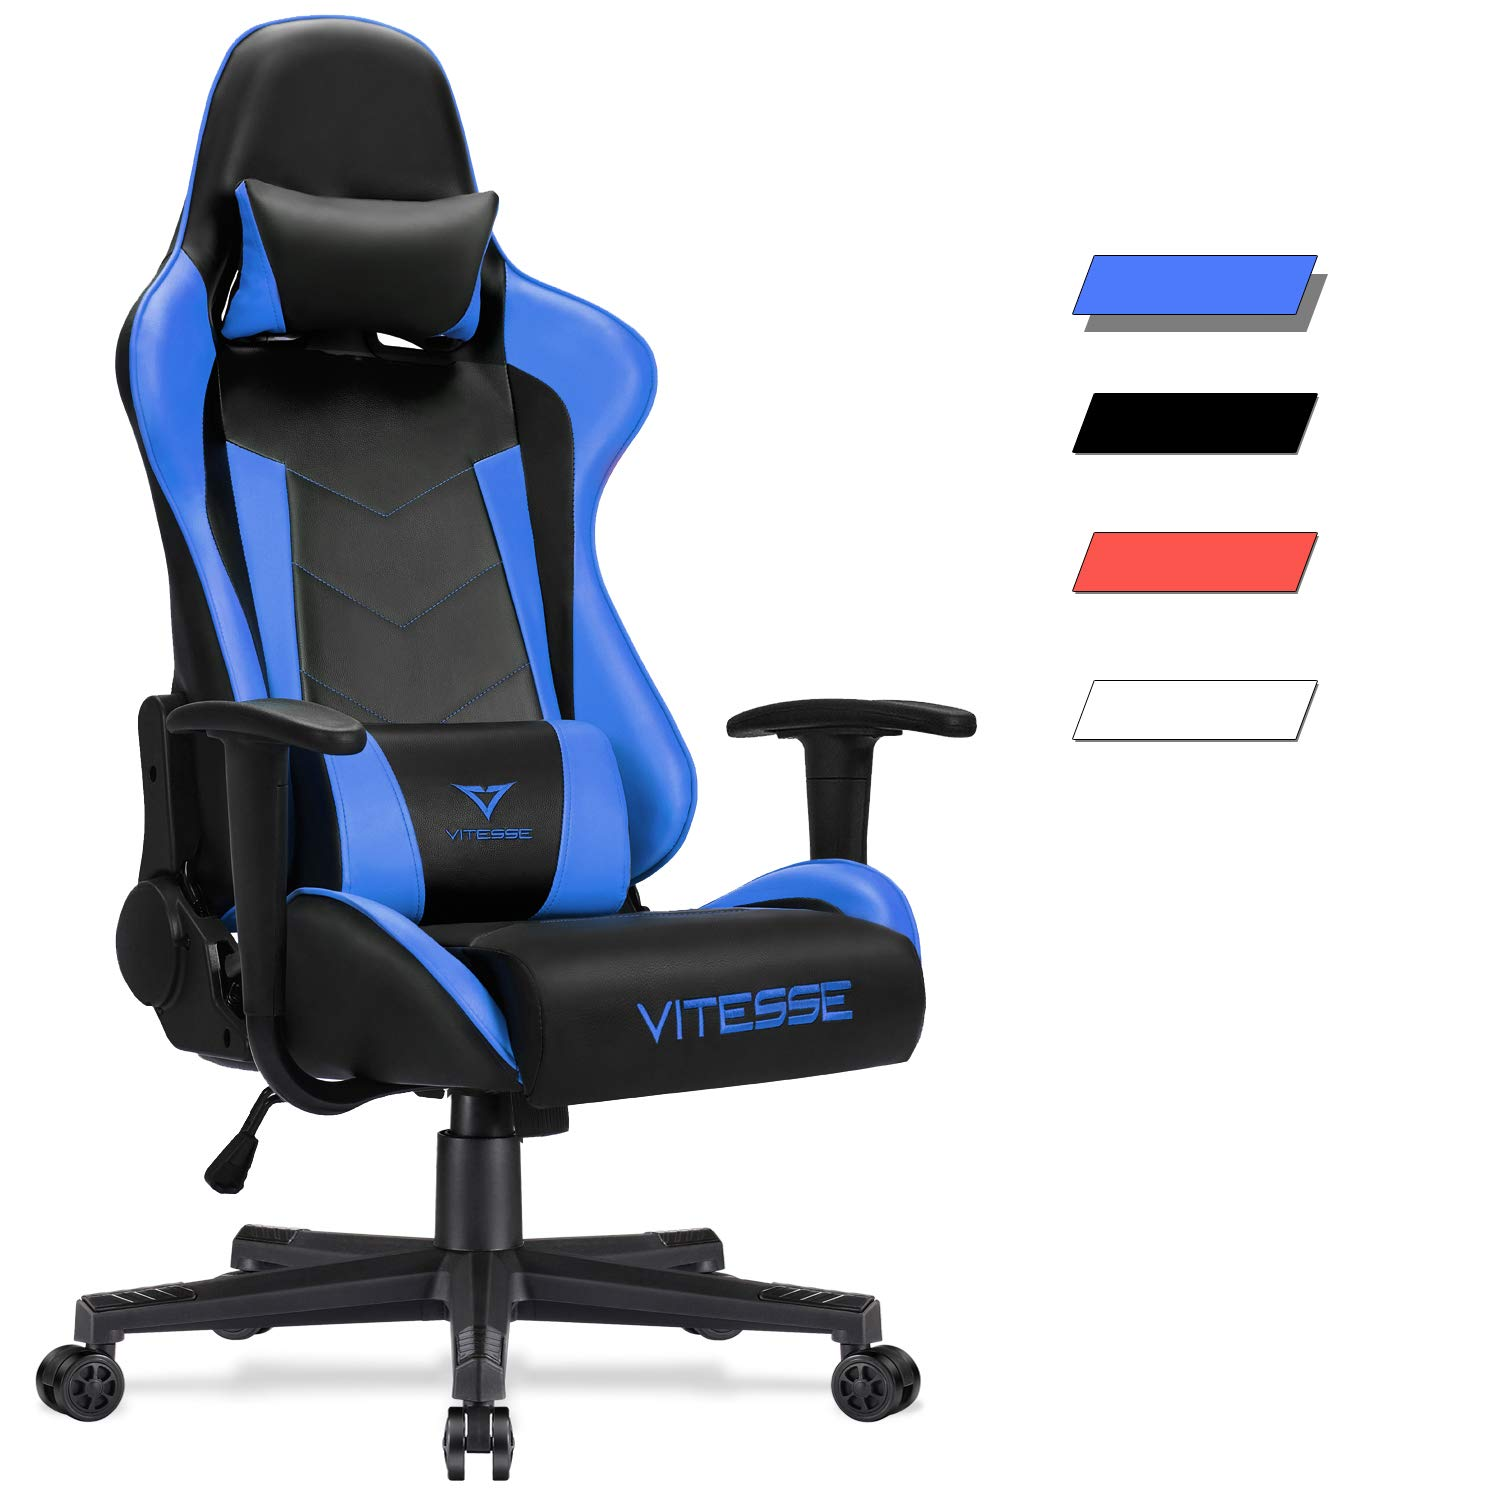 Vitesse Gaming Chair (Sillas Gaming) Video Gaming Chair Ergonomic Computer Desk Chair High Back Racing Style Comfortable Chair Swivel Executive Leather Chair with Lumbar Support and Headrest (Blue)